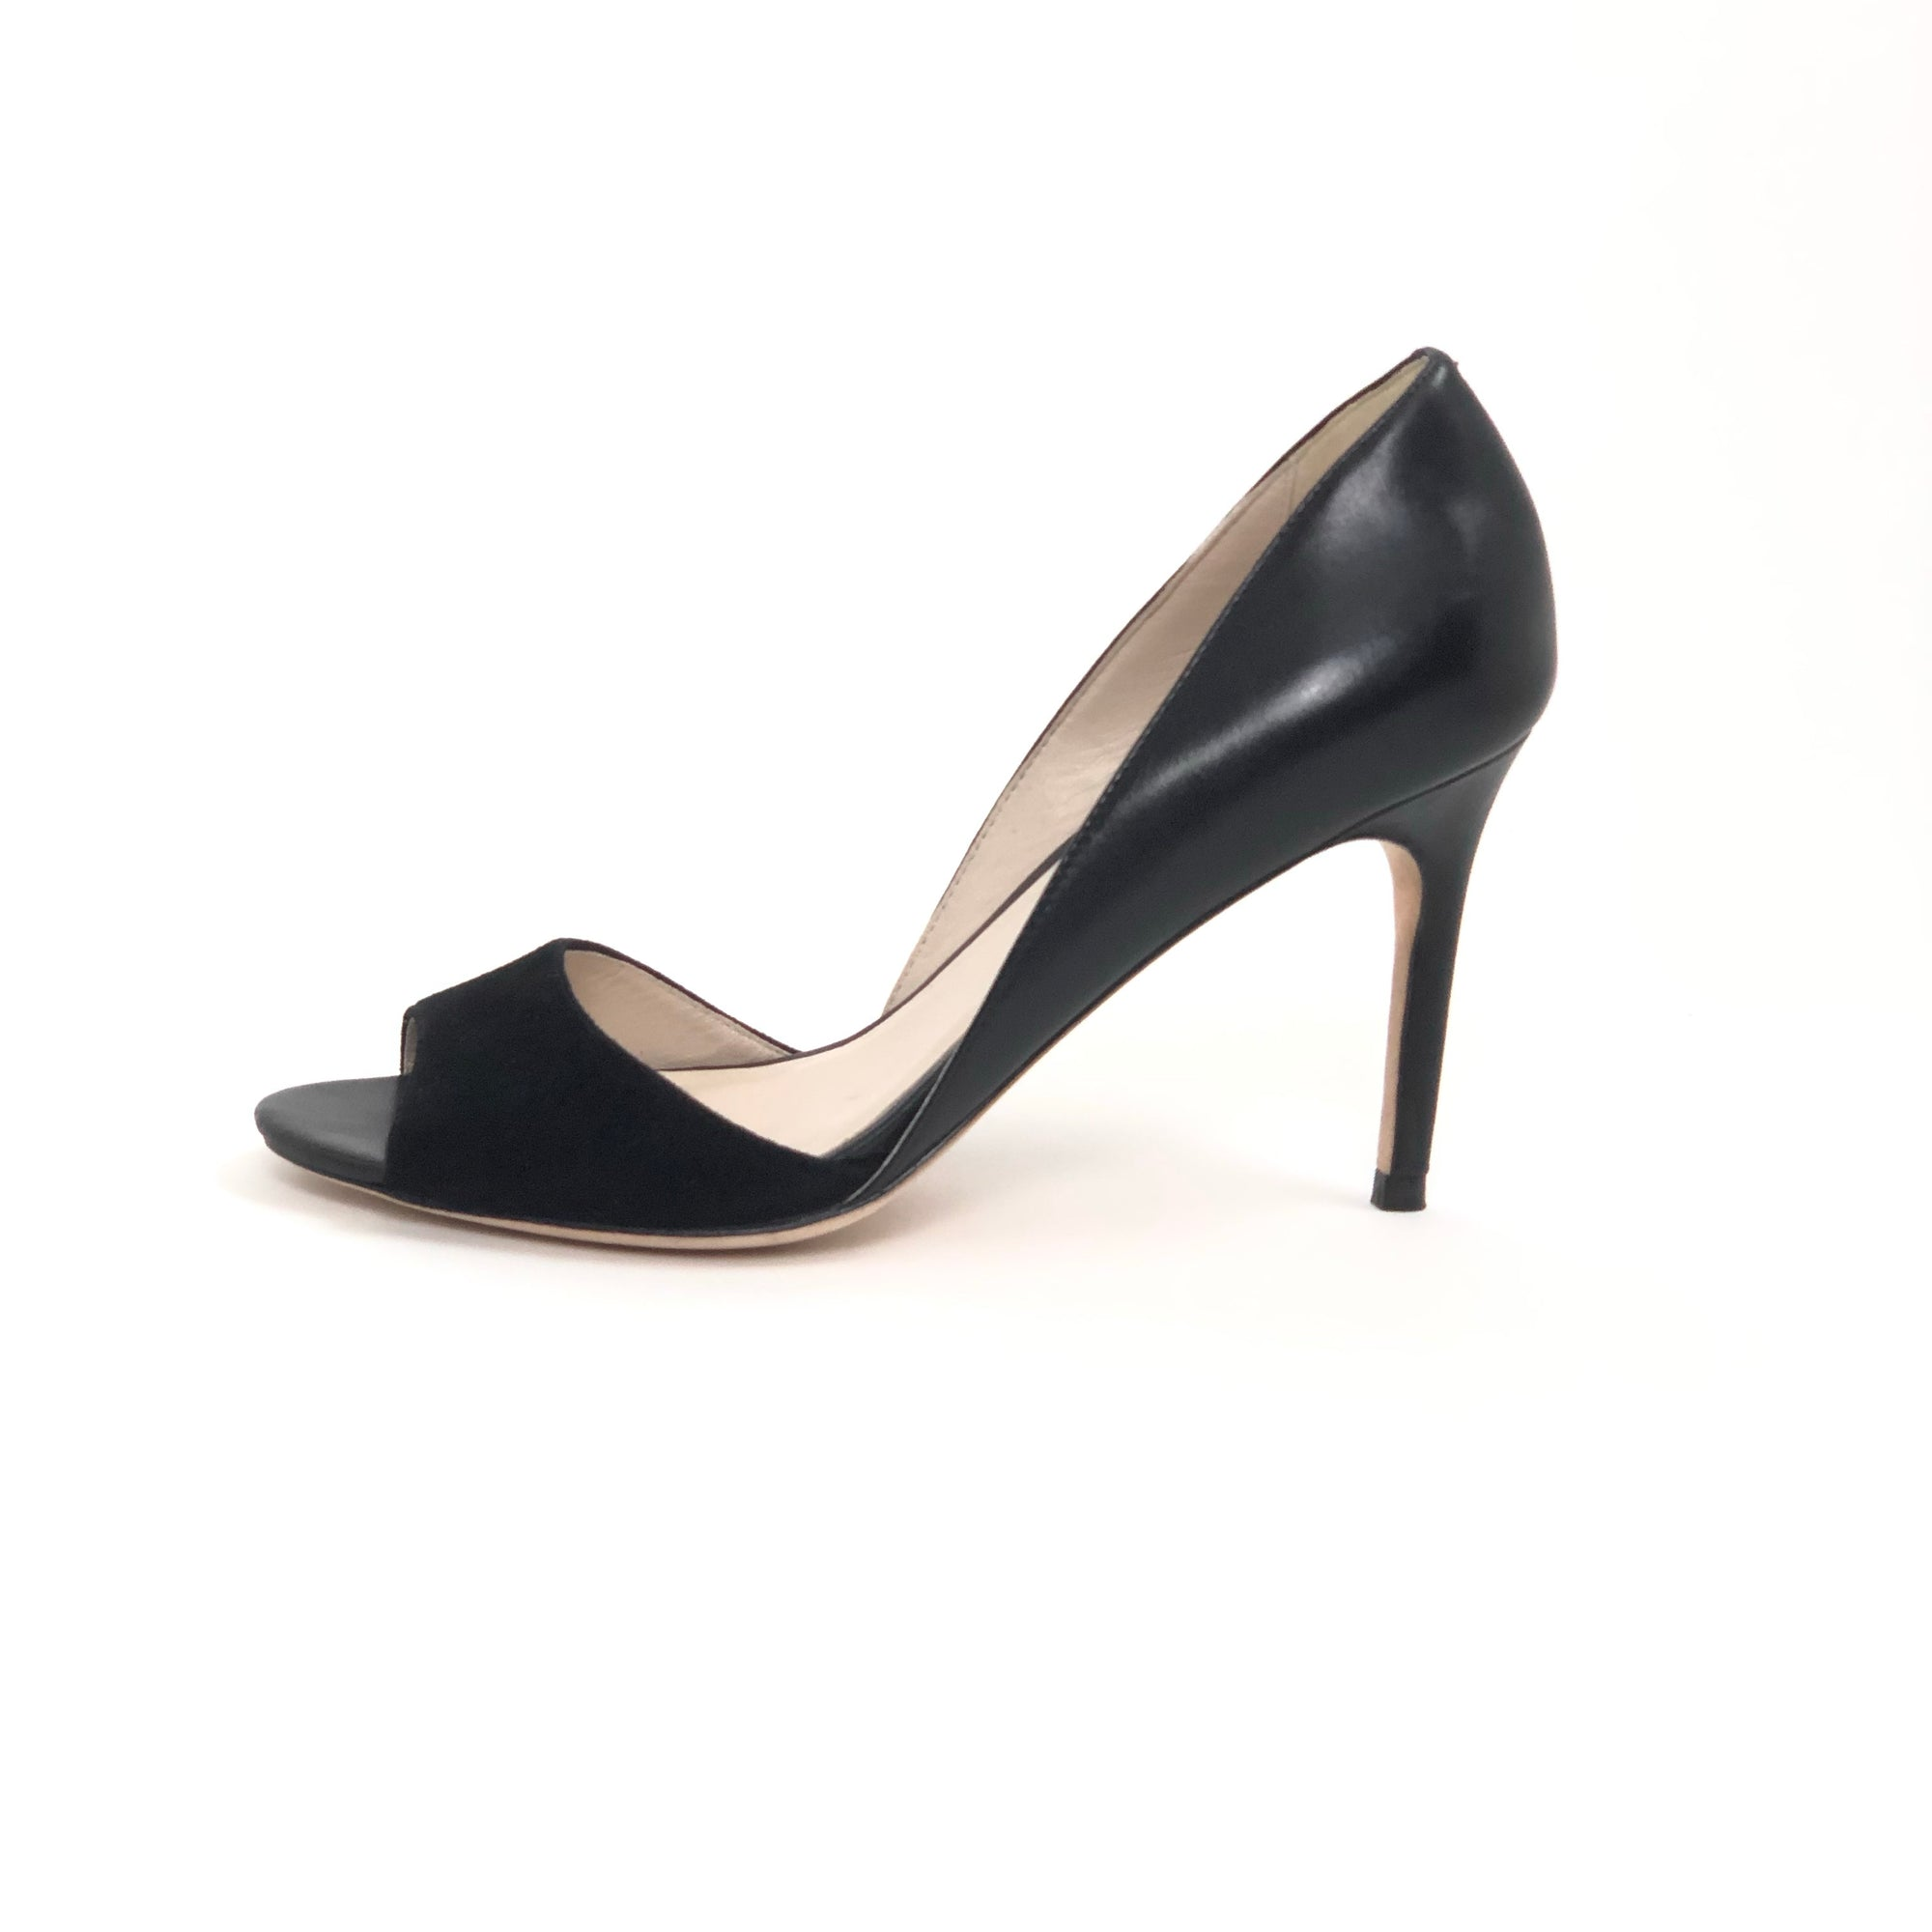 ladiesoflux - Cole Haan Antonia OT Pump Black, Size 6.5 - Ladies Of Lux - Shoes